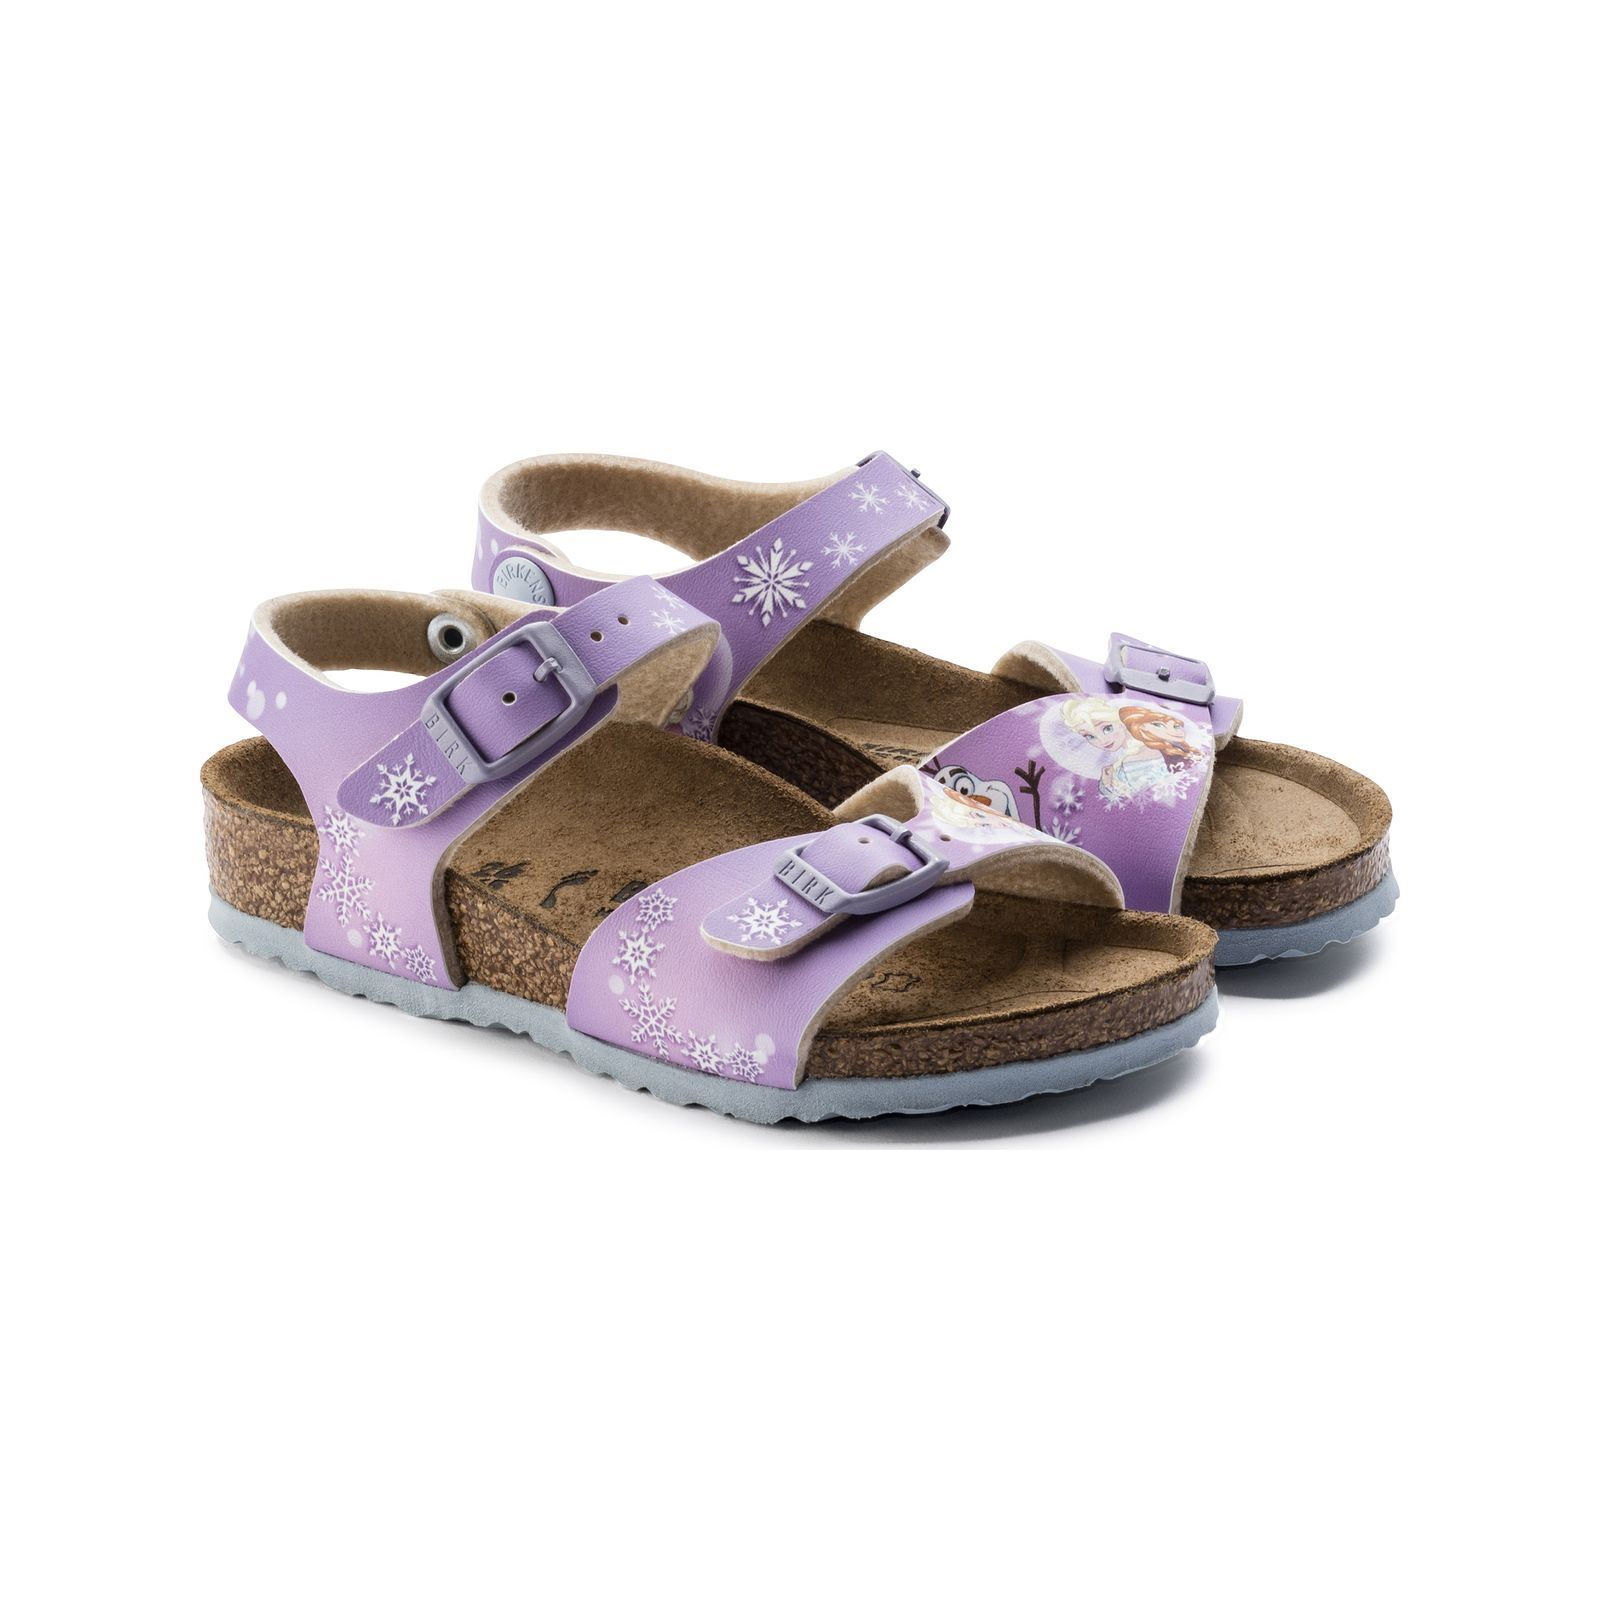 4aaa9a5f41f796 Chaussures Birkenstock Rio lilas fille UC2435x - meander.laurent ...